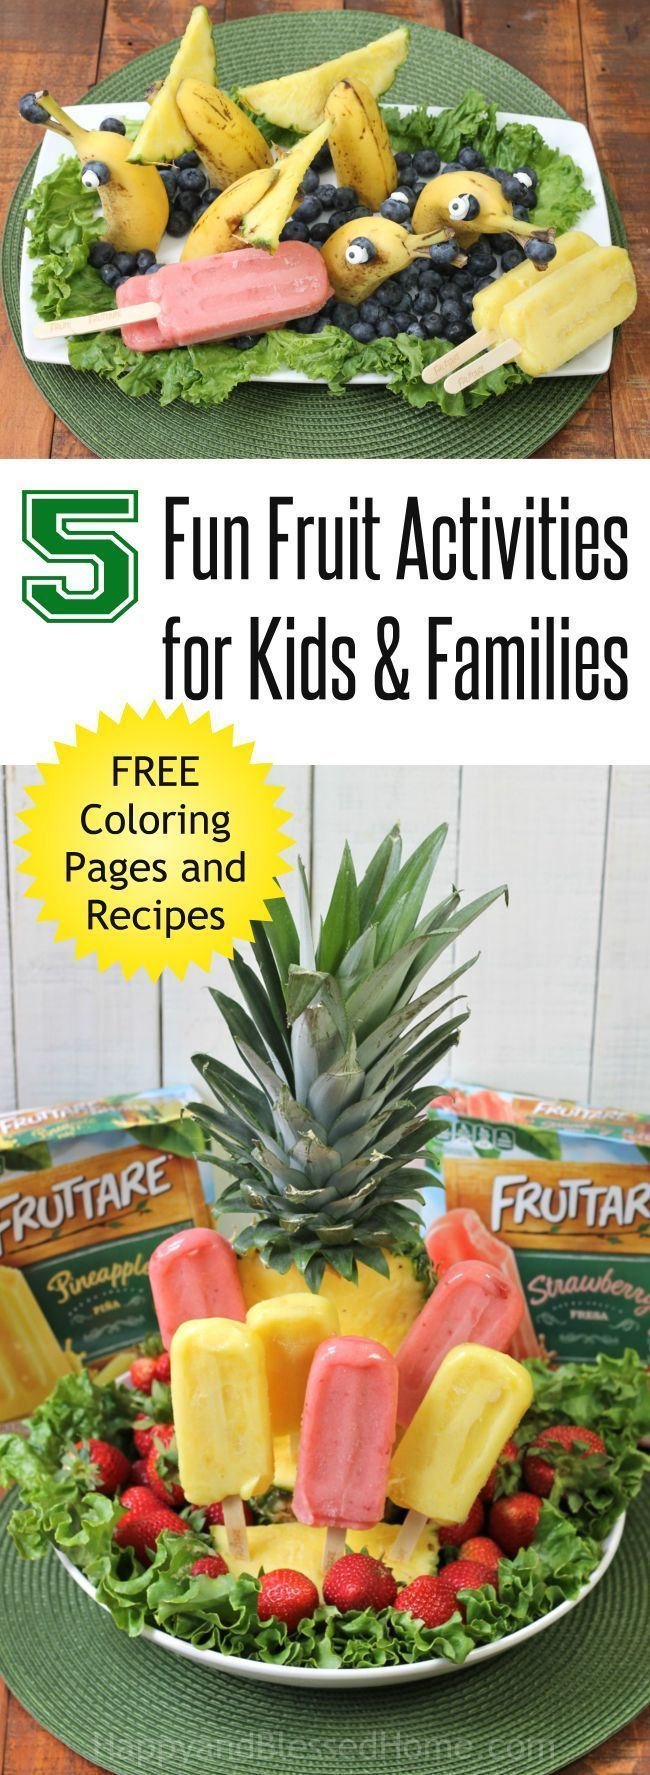 fun fruit activities for families cooking with kids pinterest